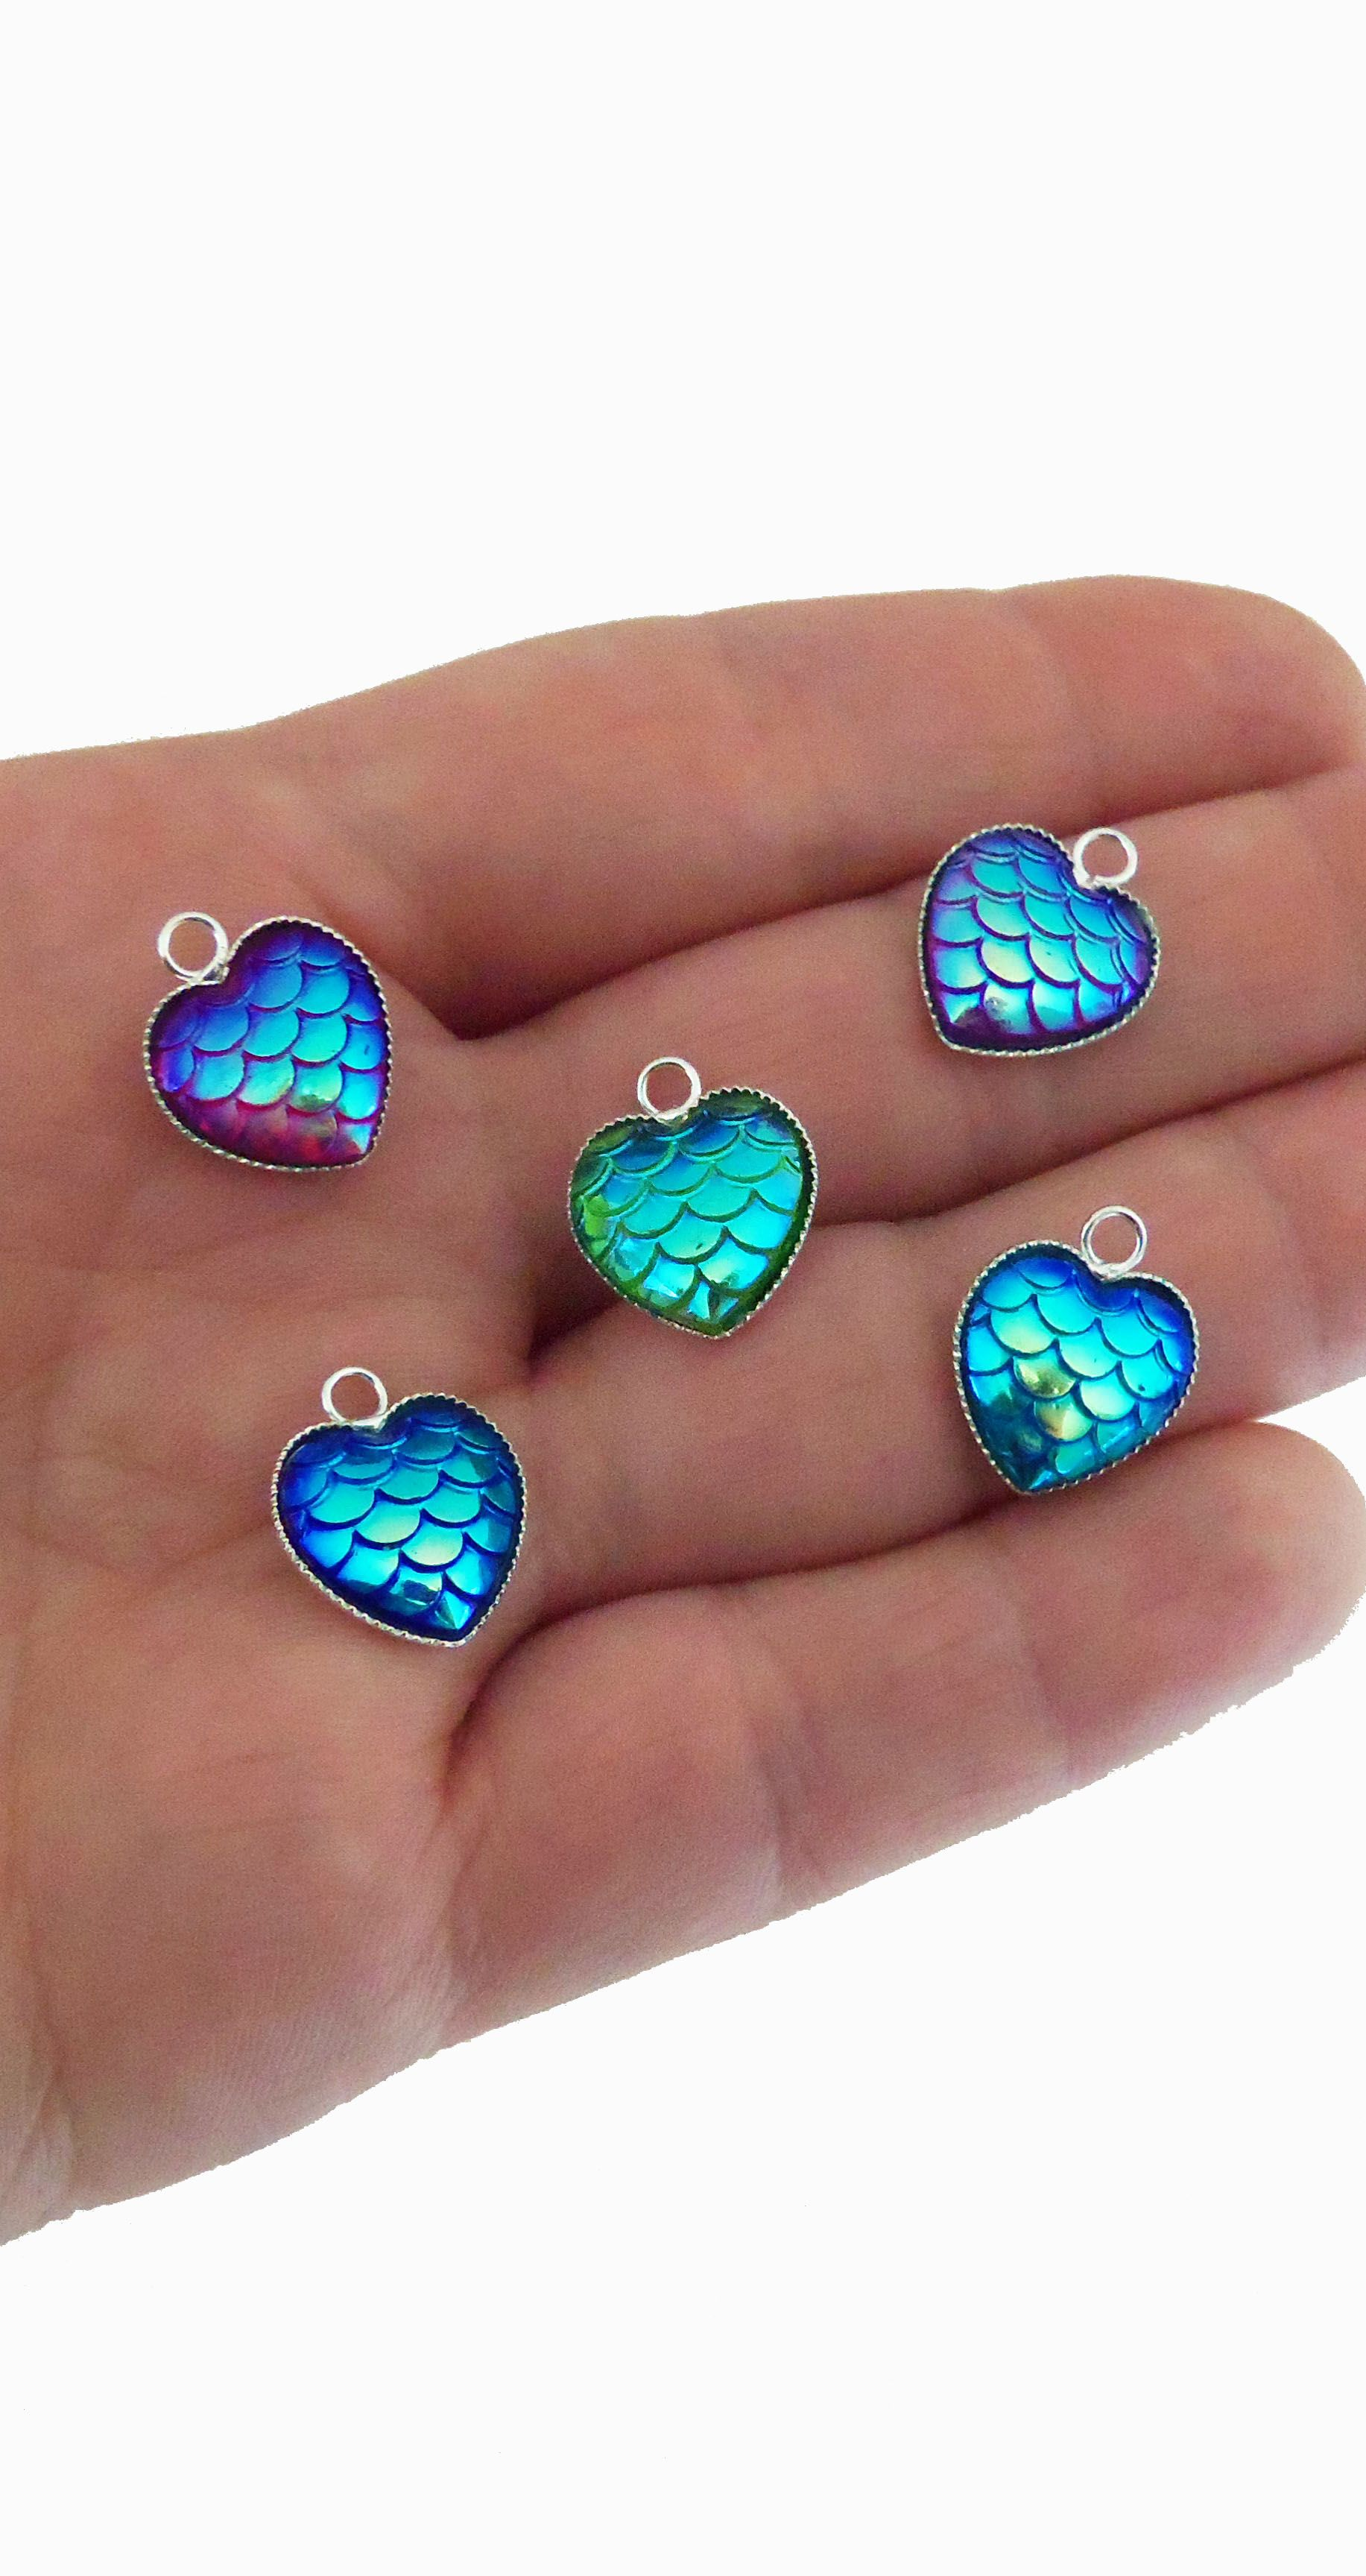 heart shaped mermaid scale charms, mermaid scales in shimmery blue ...